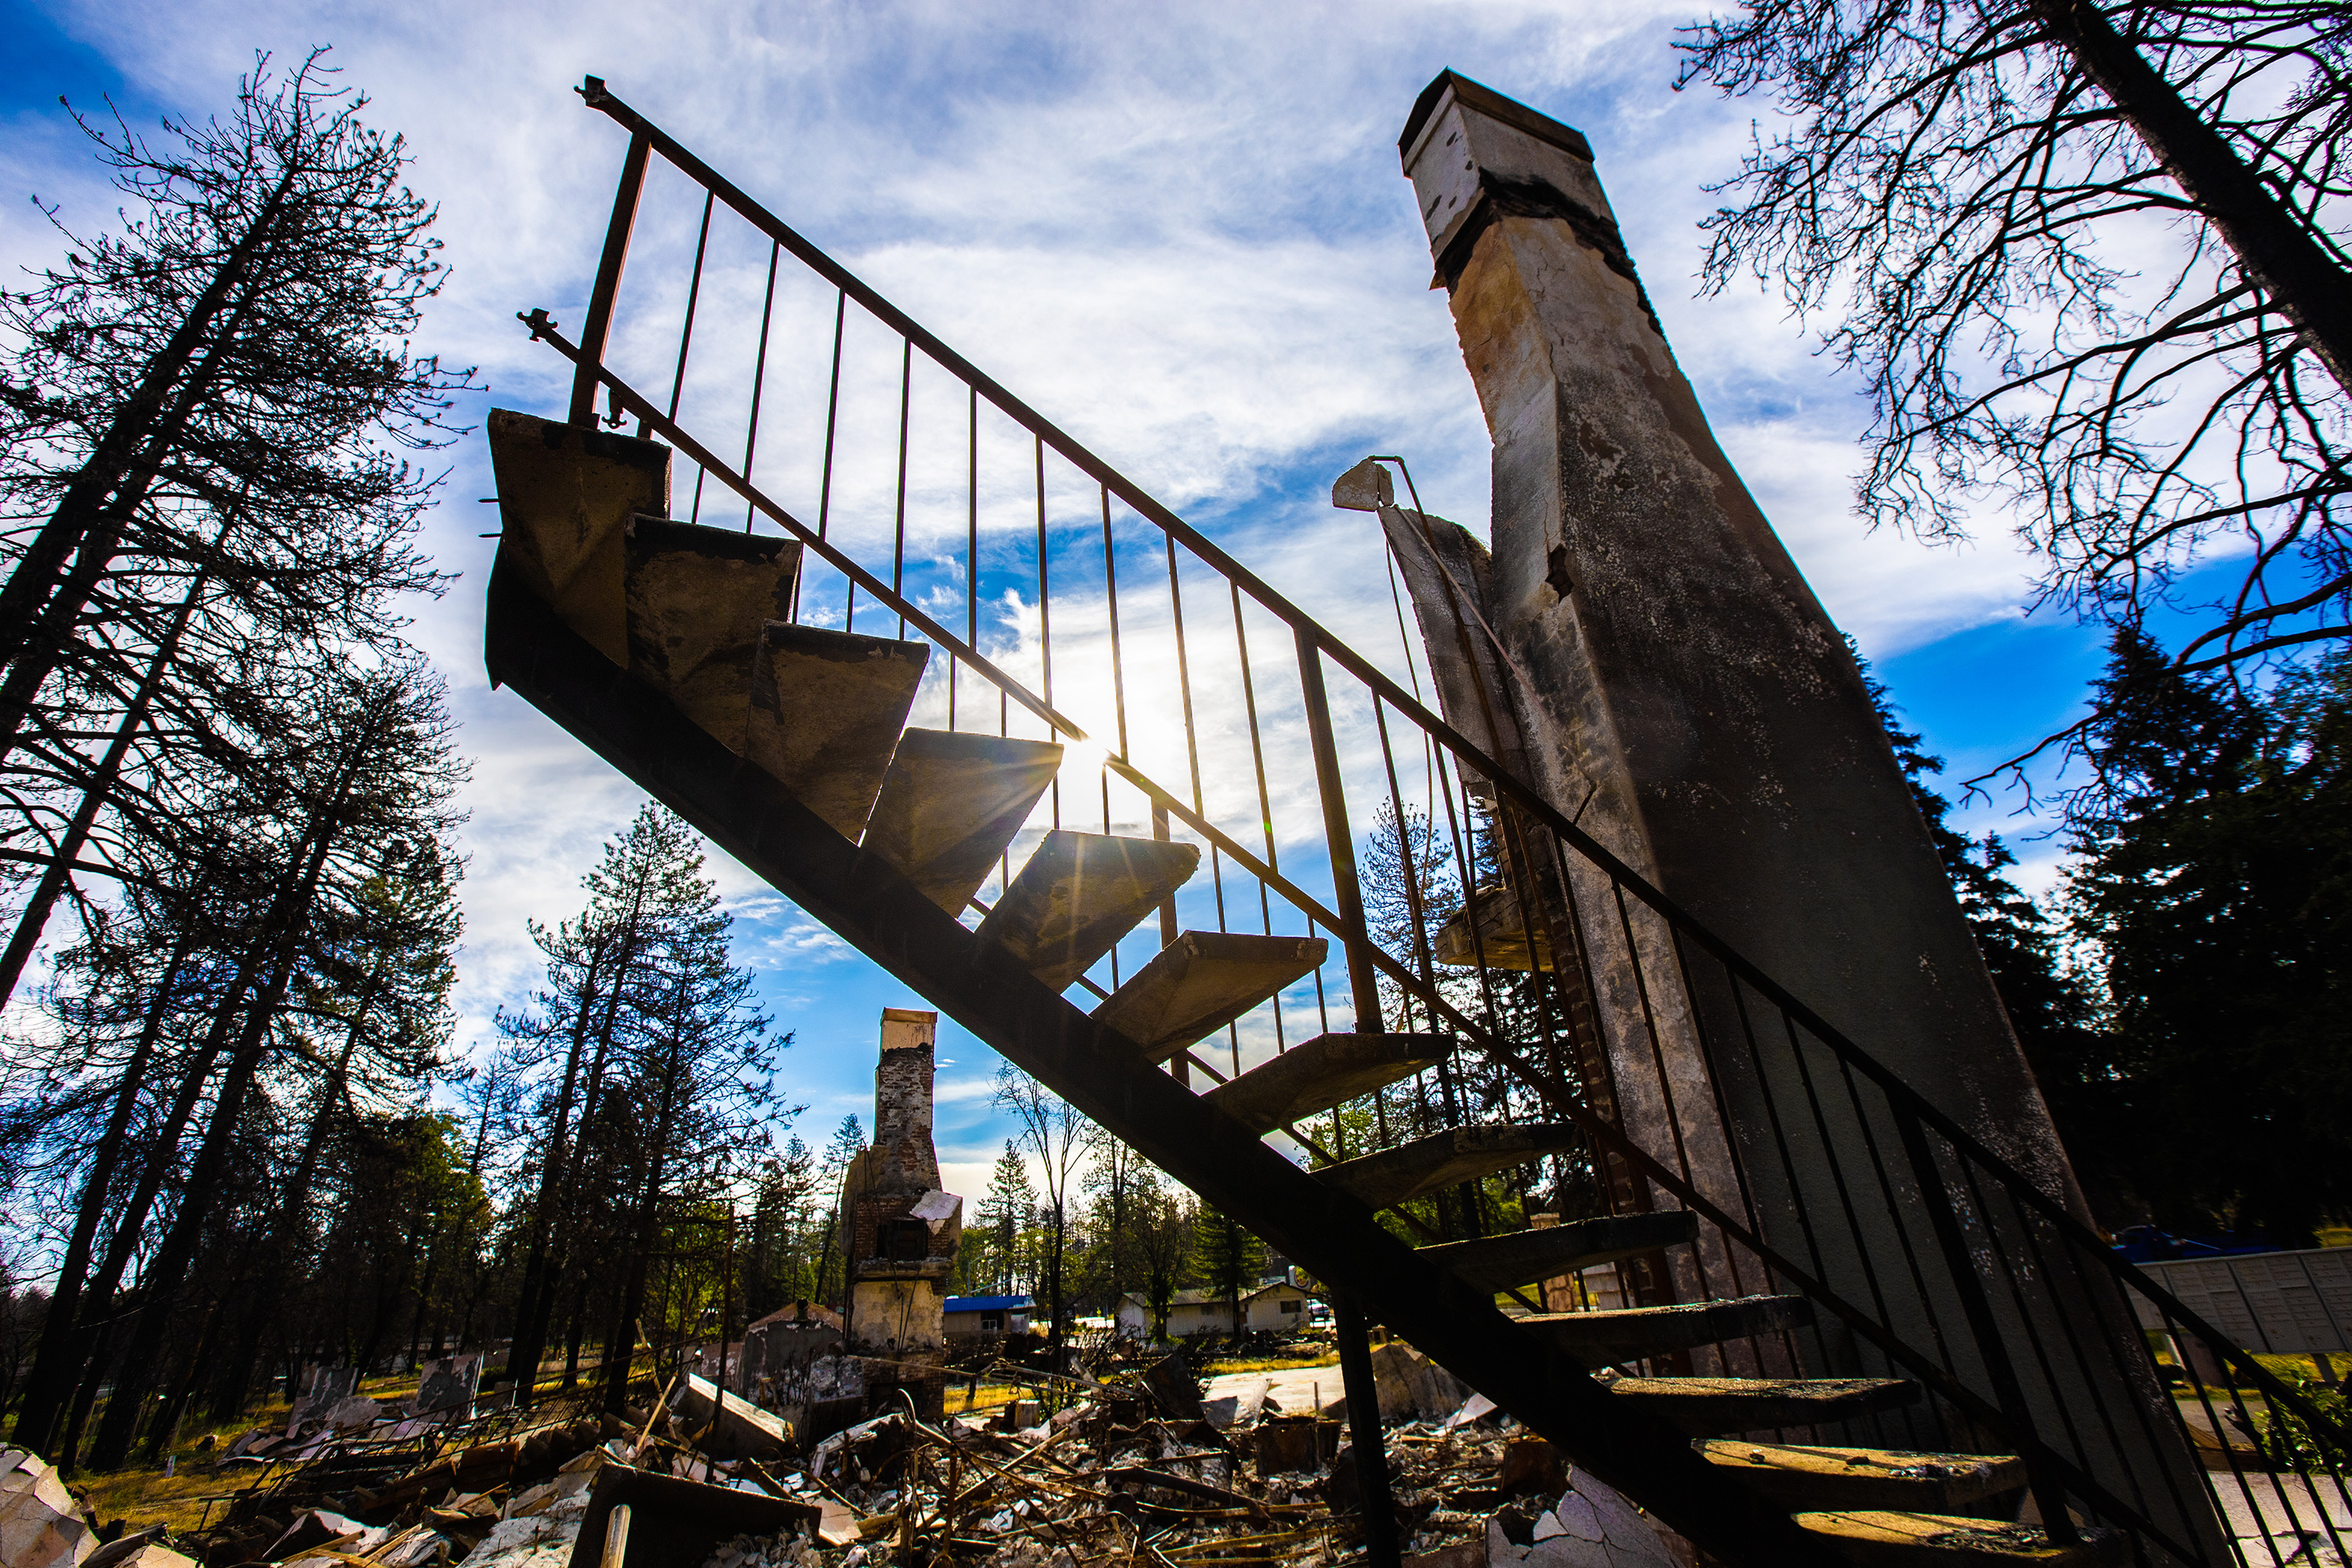 Paradise, CA where widfires have destroyed a house but the stairs are intact